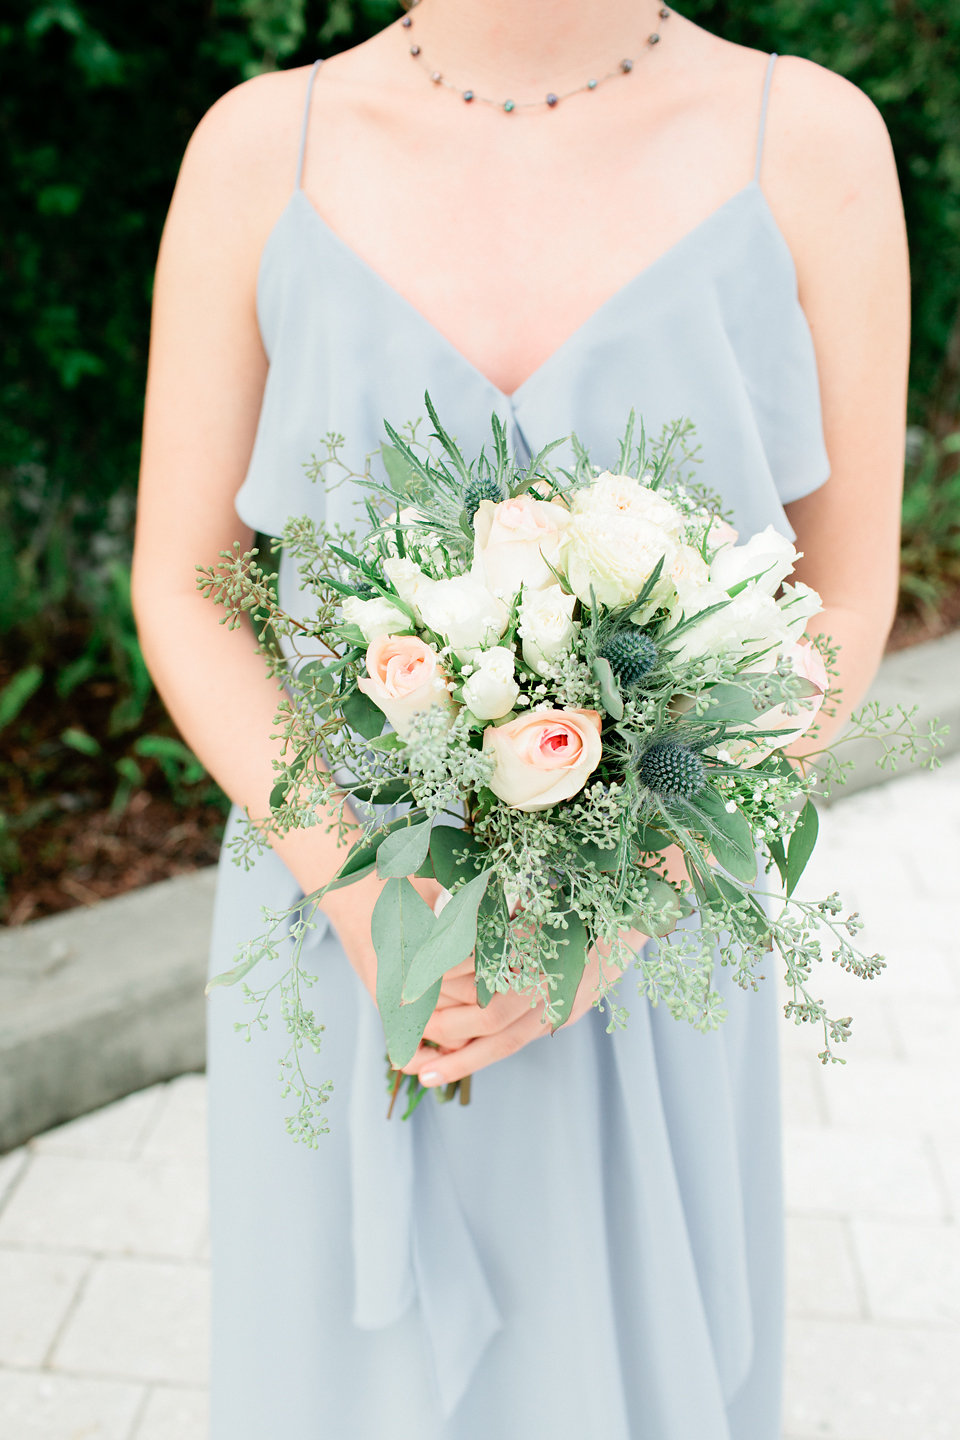 The bridesmaid bouquets consisted of blush and white roses, eucalyptus, and blue thistle.